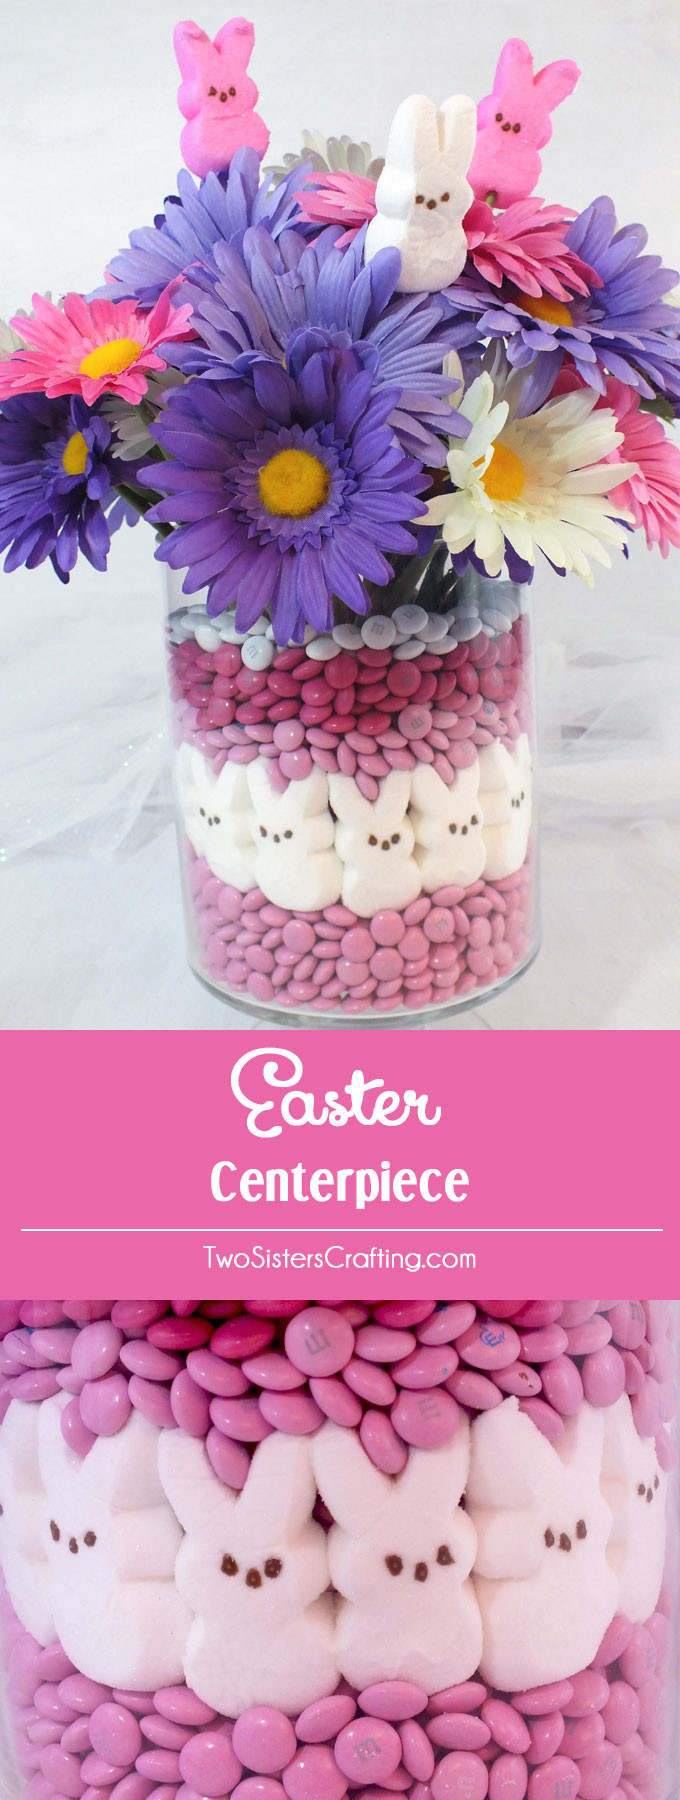 Easter Party Centerpiece Ideas  Easter Centerpiece Two Sisters